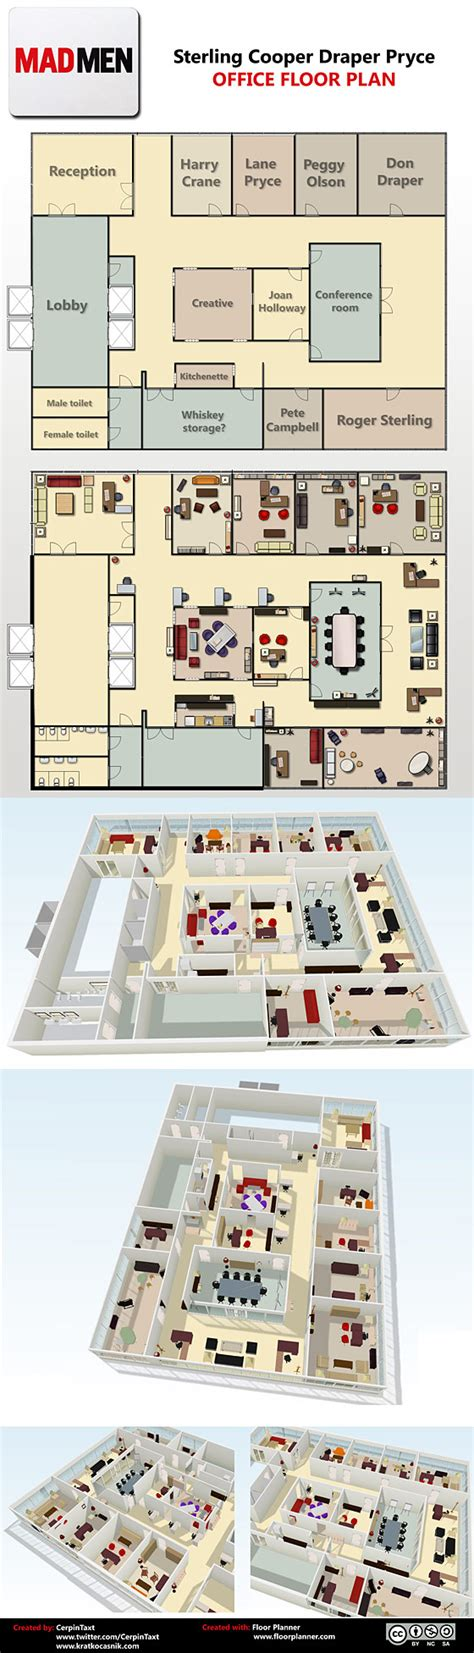 men floor plan see a floor plan of the mad men office vulture